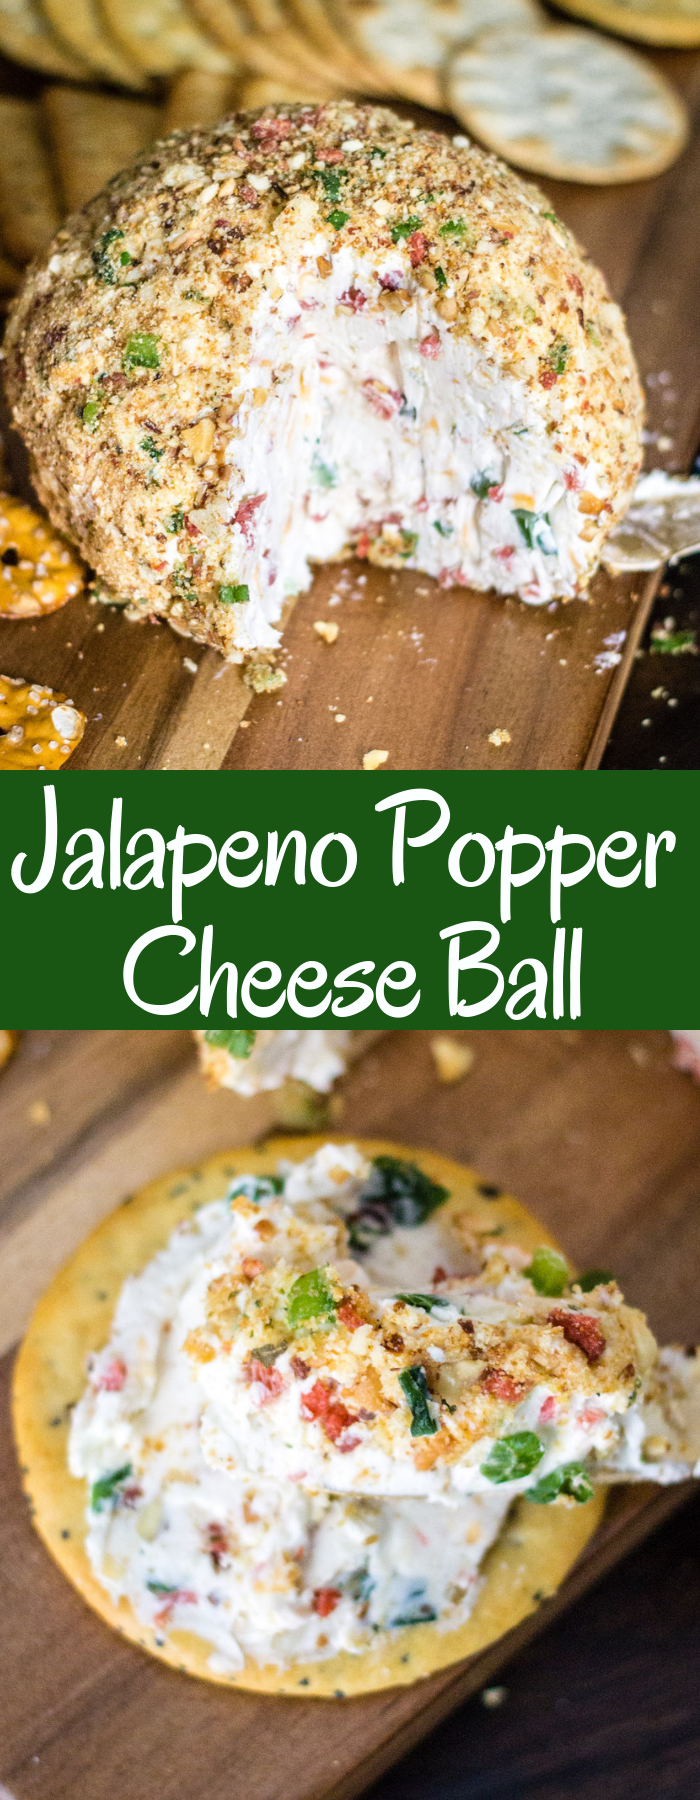 A Jalapeno Popper Cheese Ball is the perfect party appetizer! It's creamy with a little kick and crunch, it's majorly delicious and super easy to make!